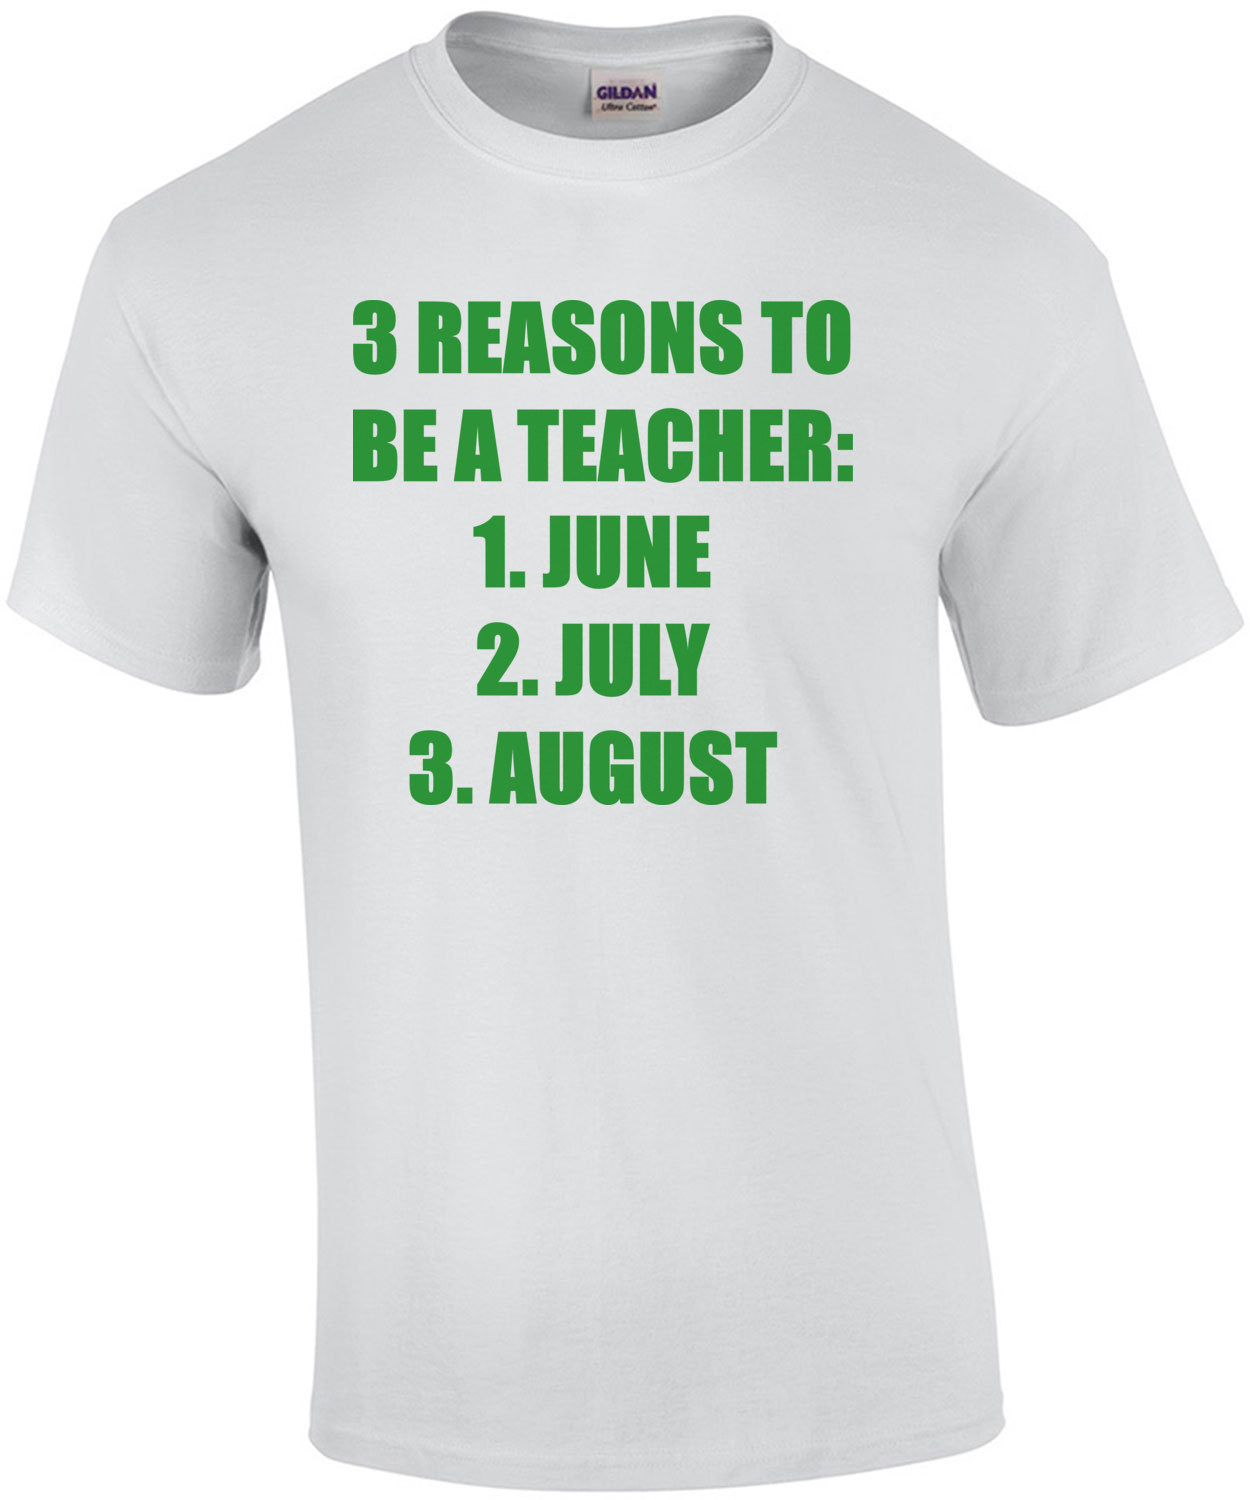 3 Reasons To Be A Teacher... June, July, & August. Shirt